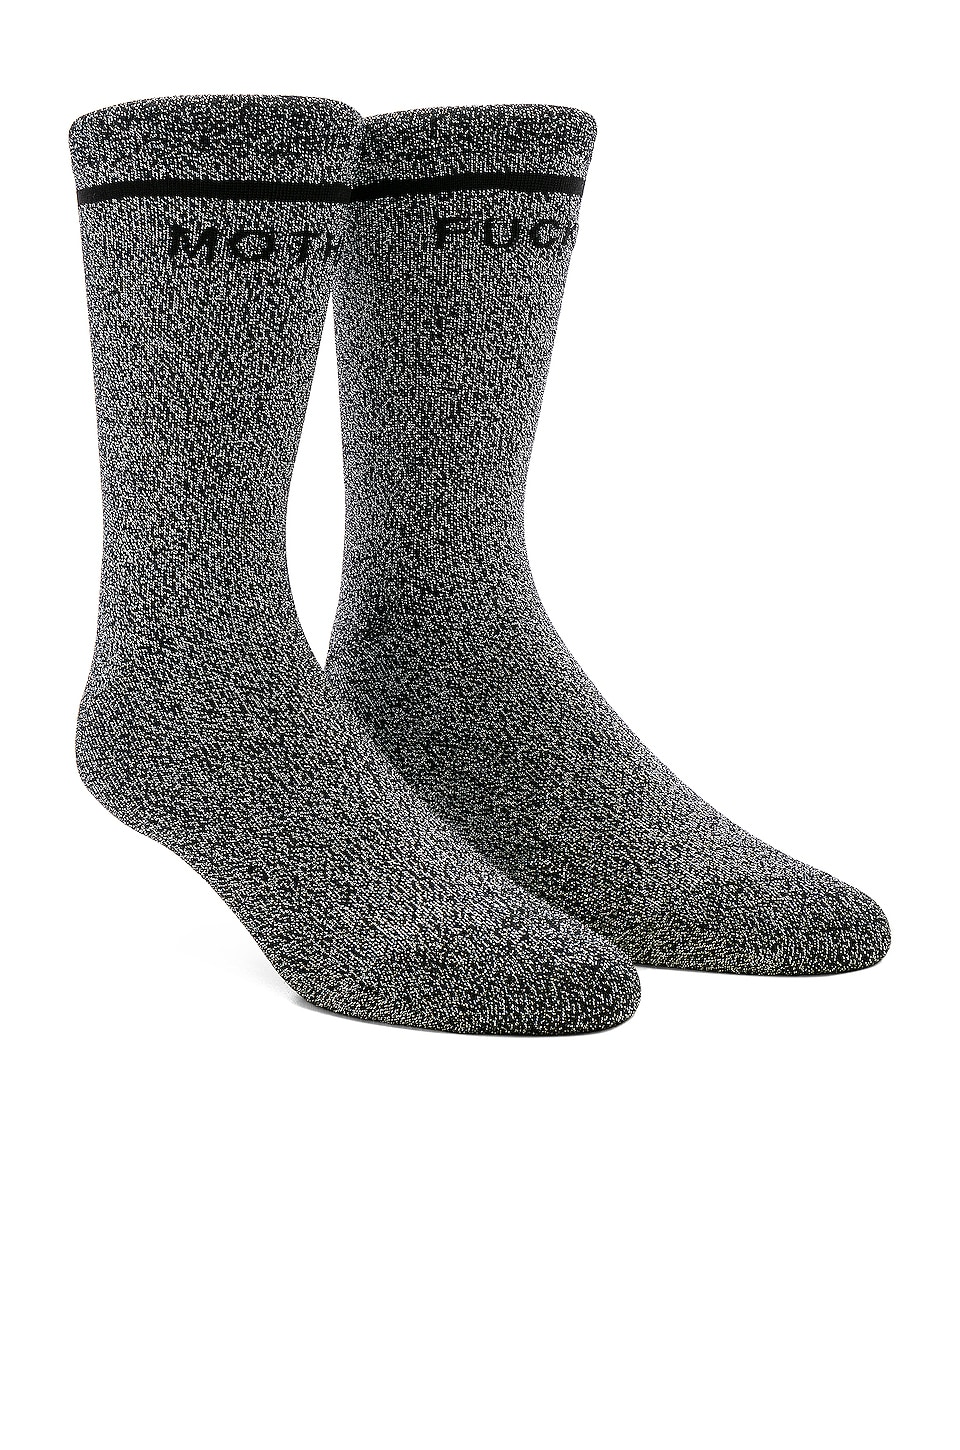 MOTHER The Tiny Dancer Socks in Black Lurex